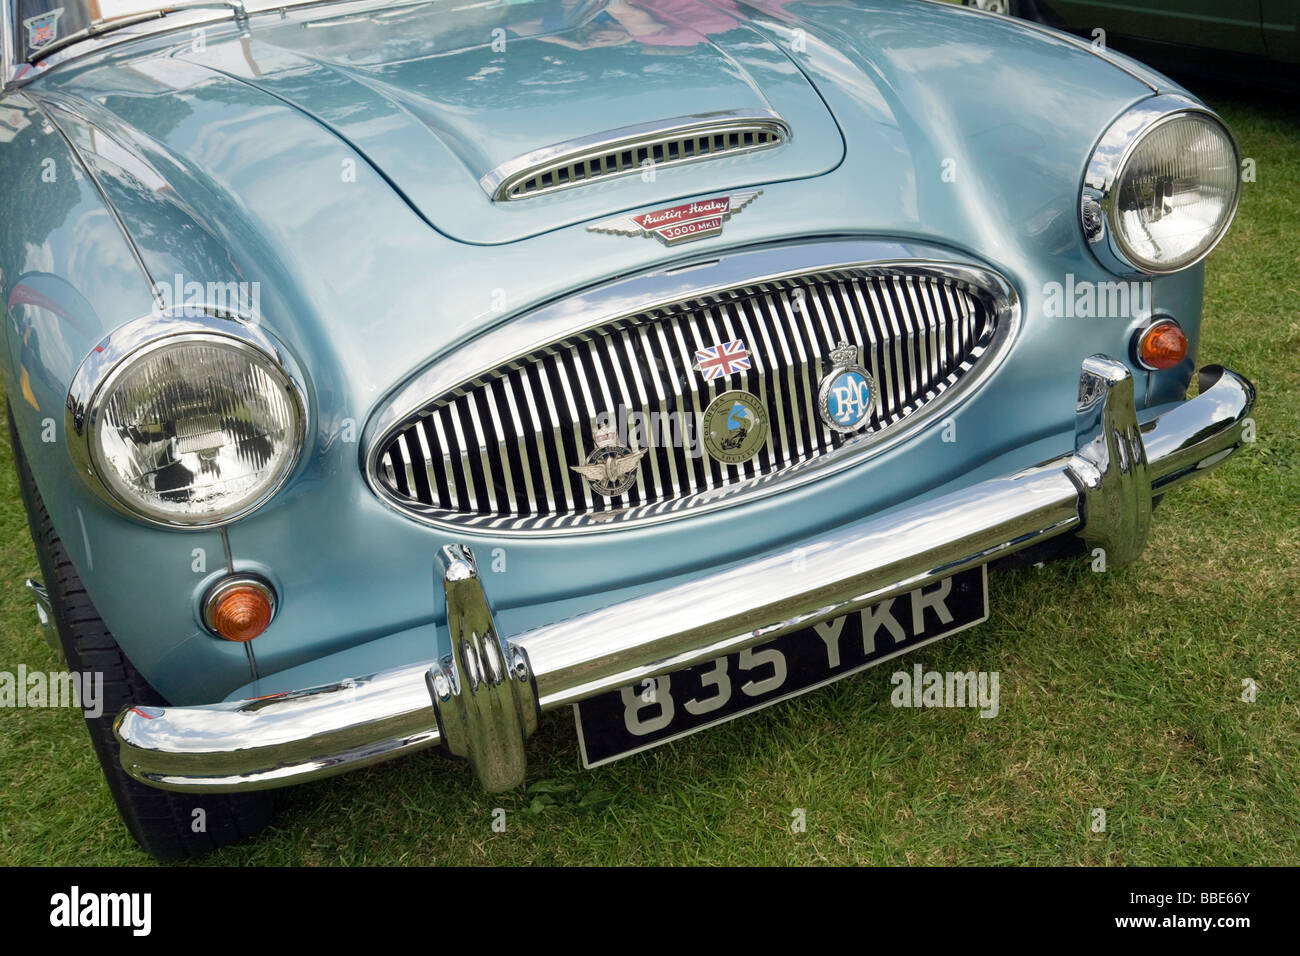 Der Austin Healey 3000 Mark 2 Oldtimer Sportwagen bei Wallingford Oldtimer-Rallye, Wallingford, Oxfordshire UK Stockbild